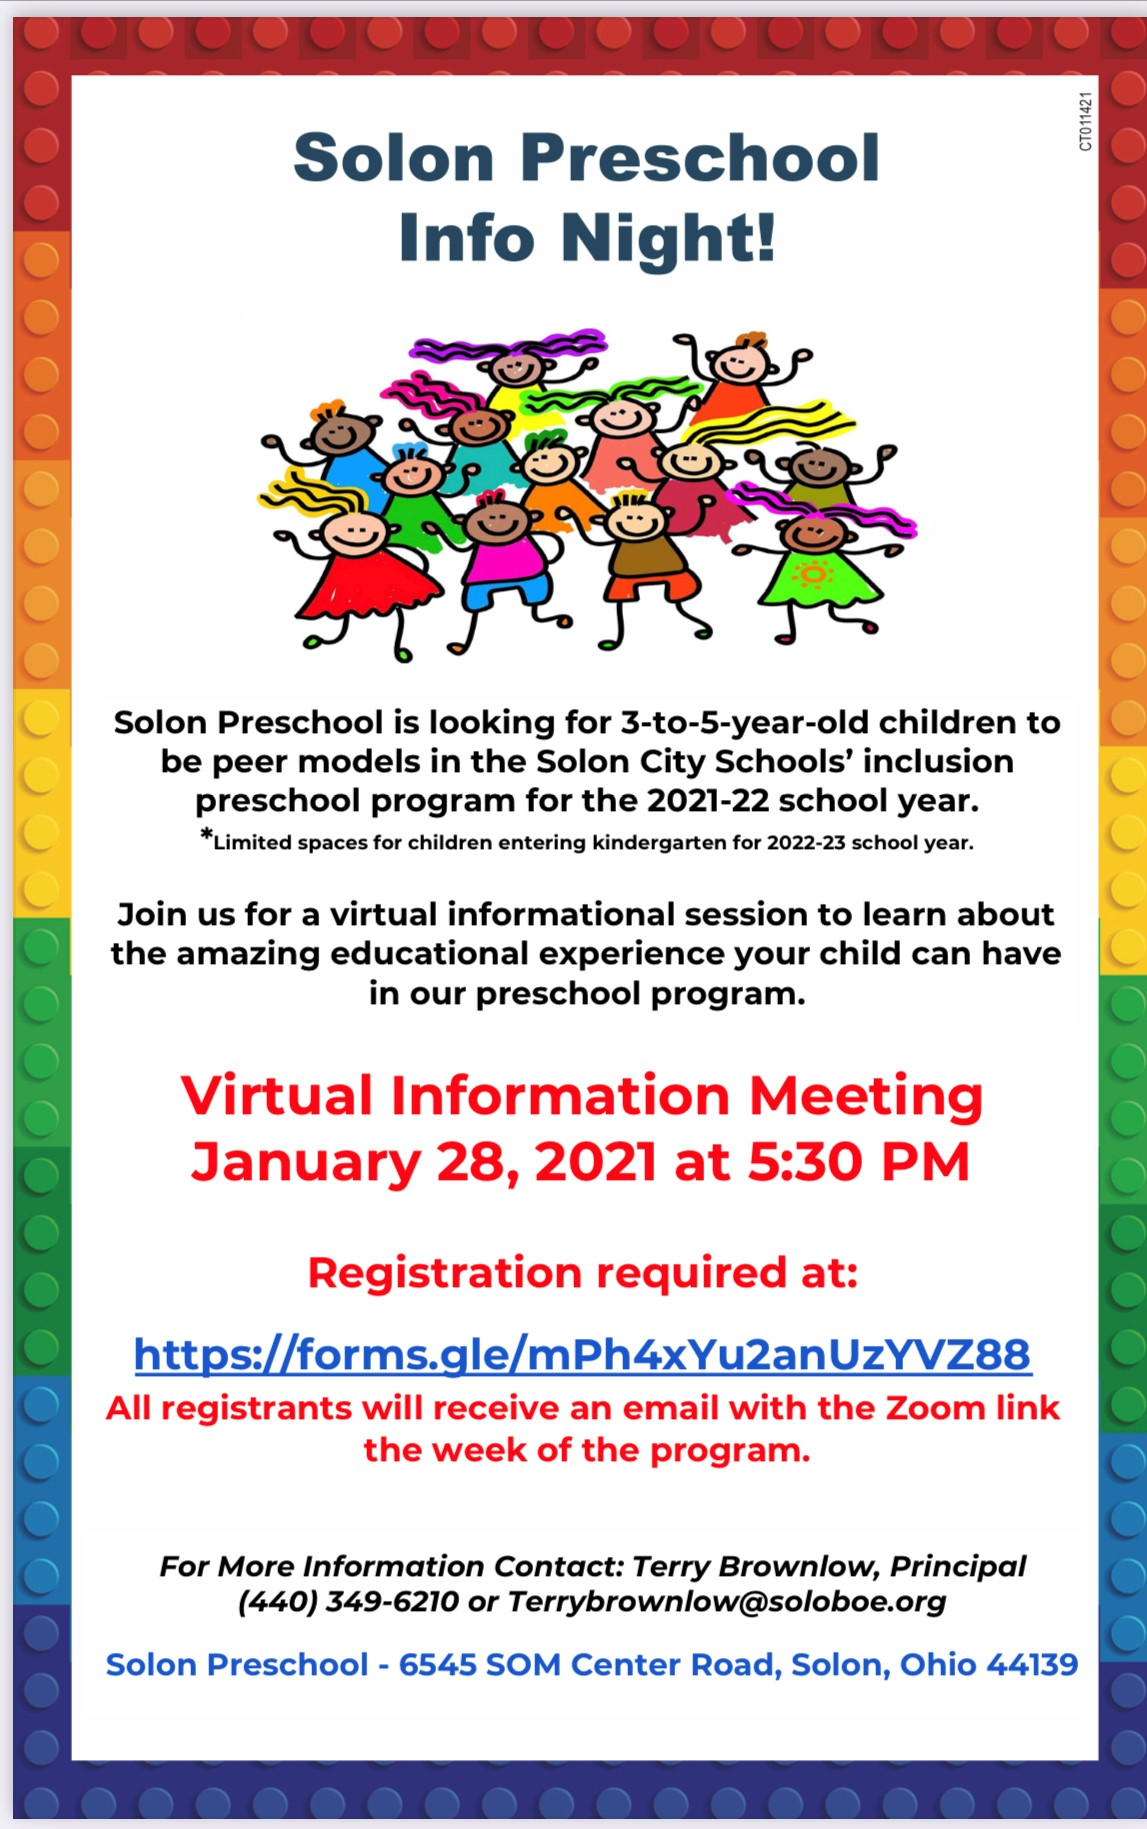 Solon Preschool Info Night January 28 5:30 pm with graphic of preschool kids and colorful lego brick outline